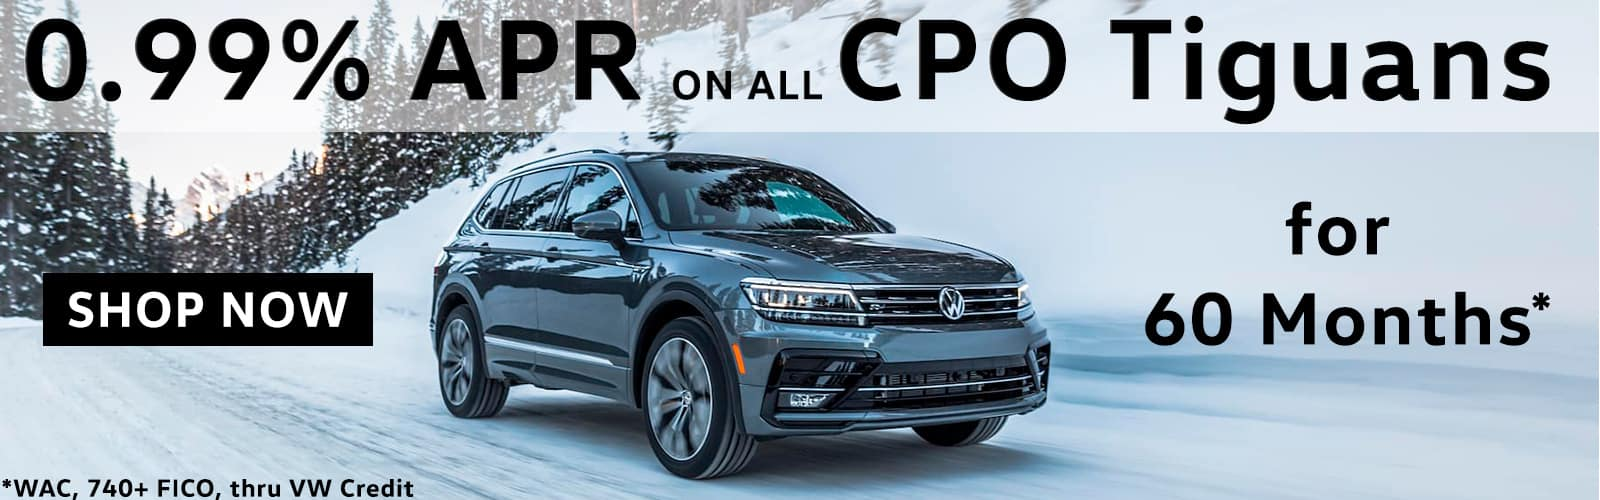 0% APR for 60 months on all CPO Tiguans